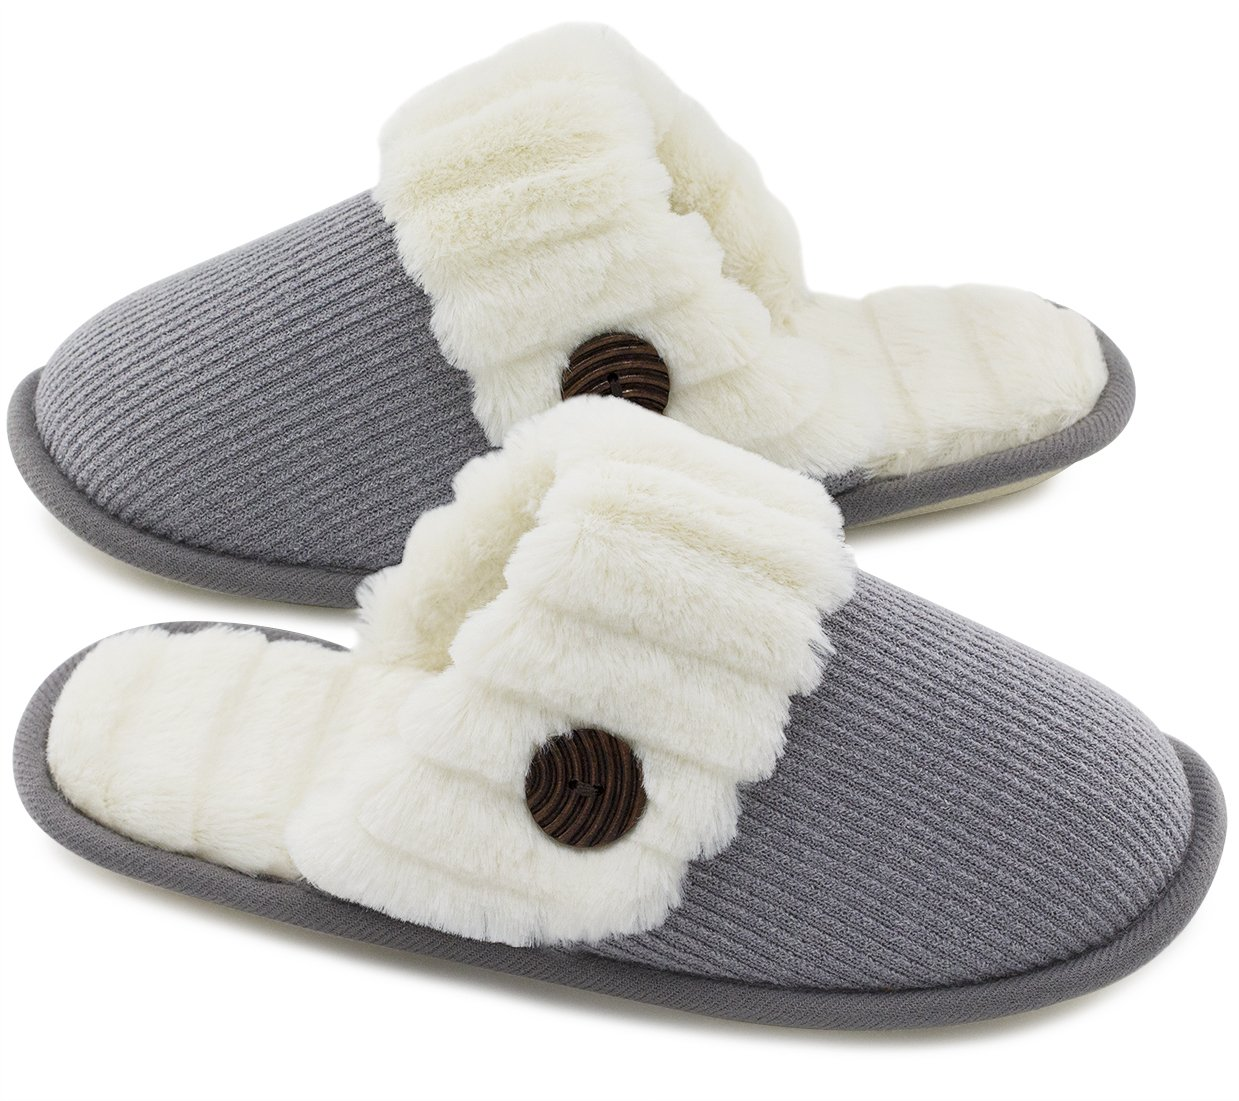 HomeTop Women's Cute Fuzzy Knitted Memory Foam Indoor House Slippers for Families Couples (39-40 (US Women's 9-10; Men's 7-8), Light Gray) by HomeTop